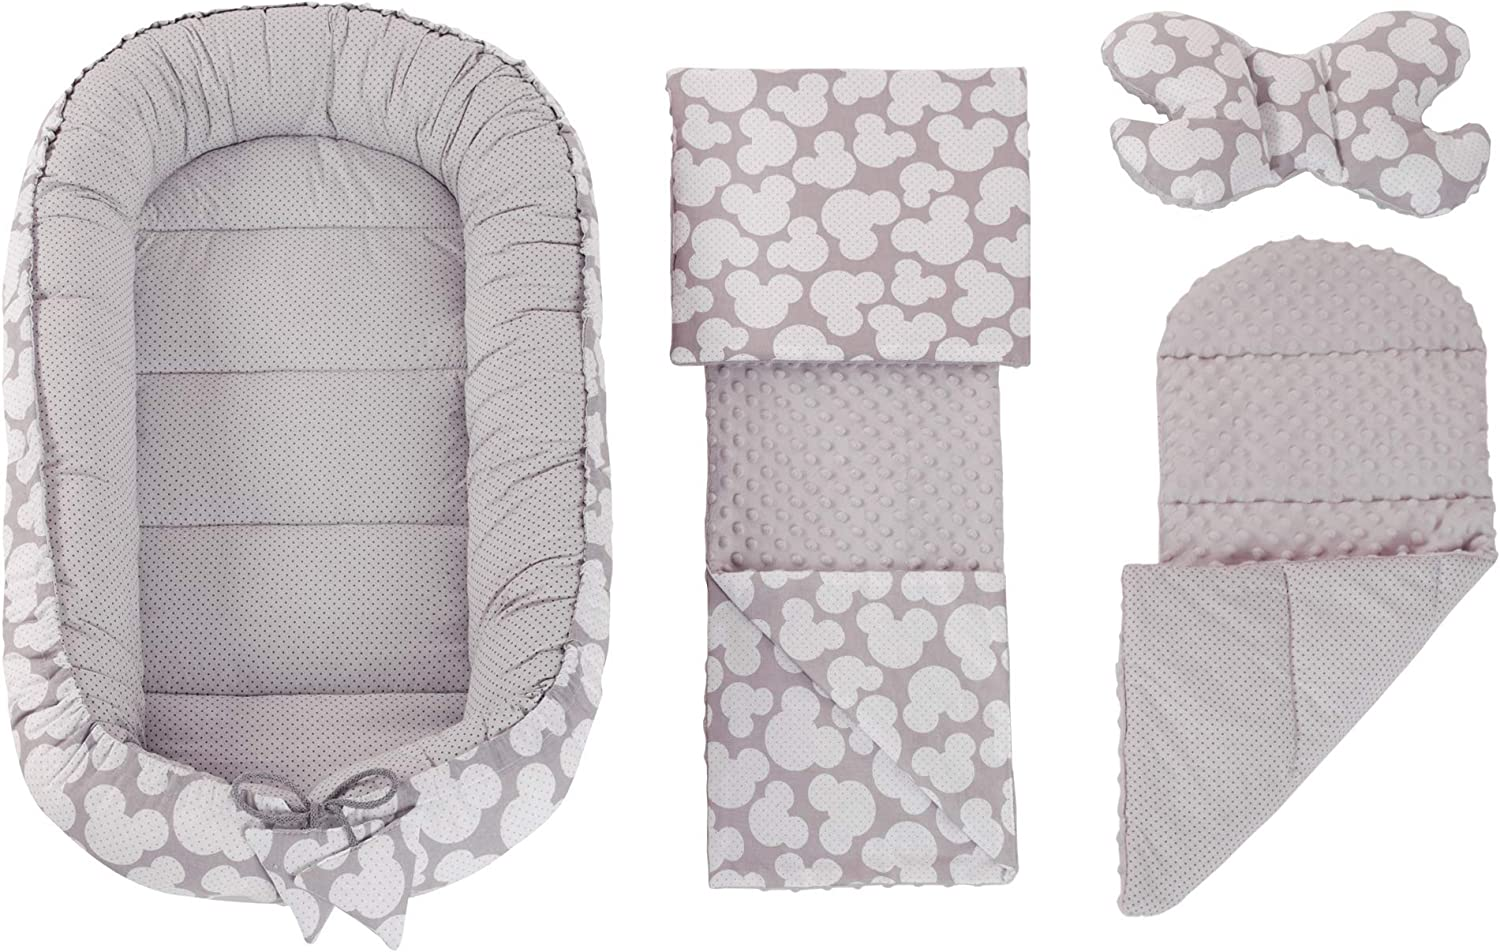 100/% Cotton 5-Piece Medi Partners Cuddly Nest Set with Baby Nest 90 x 50 cm Butterfly Pillow For Babies Removable Insert Flat Cushion Play Rug